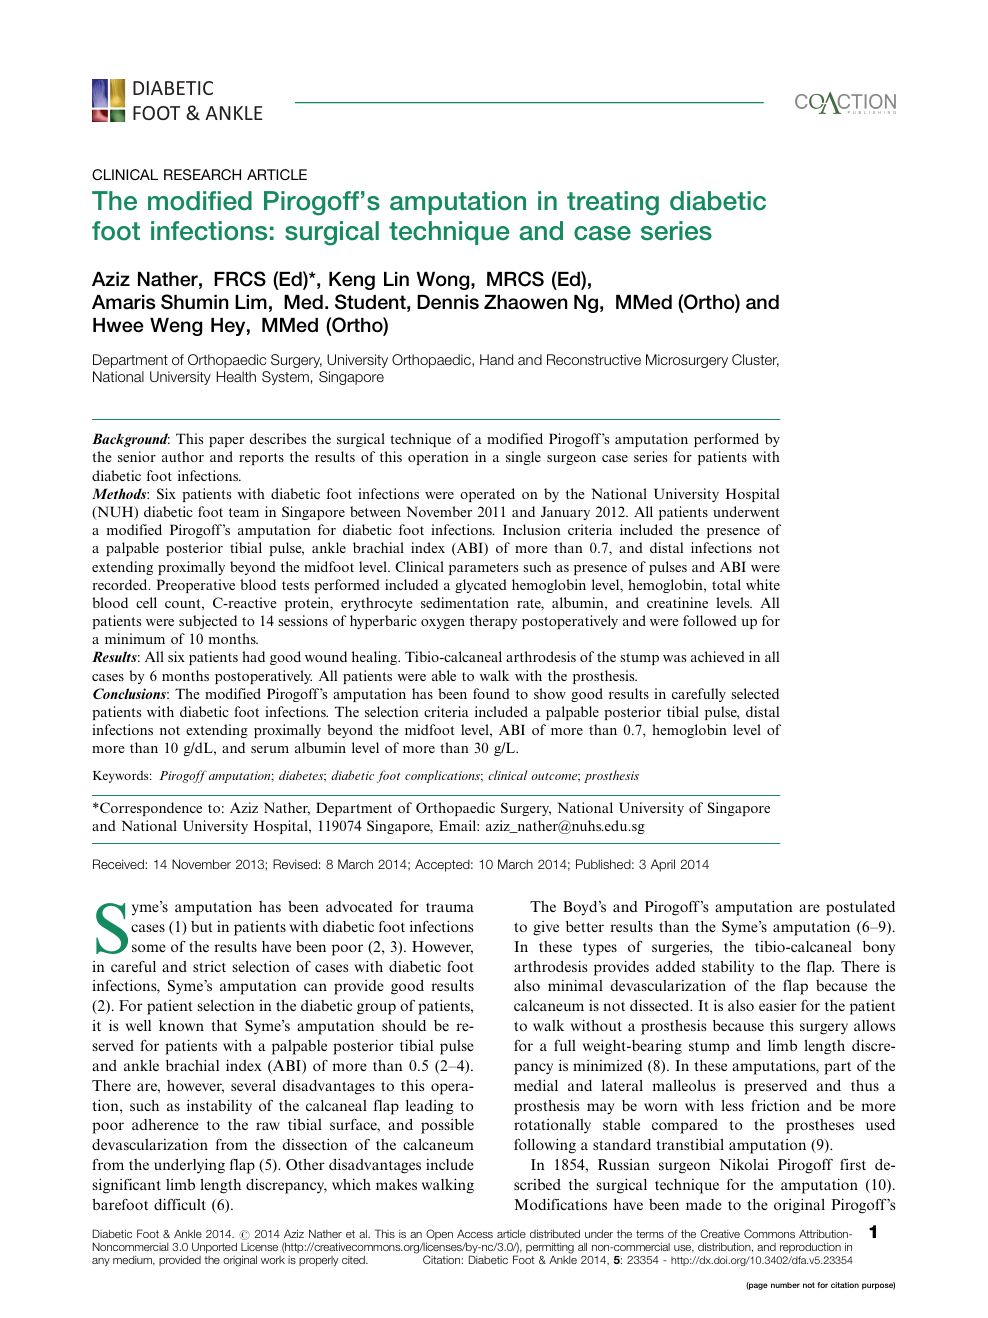 The modified Pirogoff's amputation in treating diabetic foot